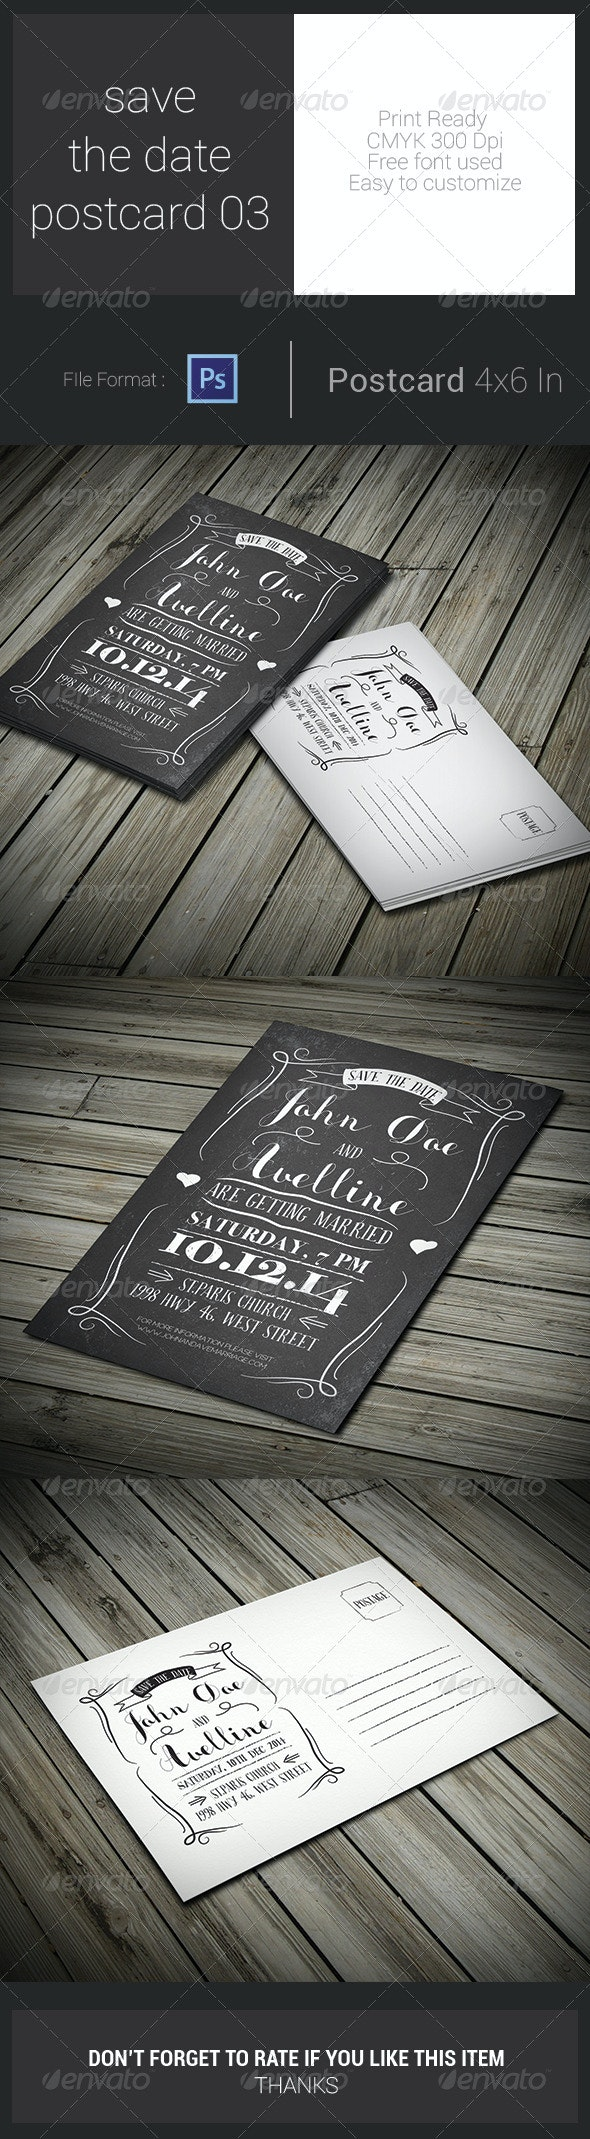 Save The Date Postcard 03 - Weddings Cards & Invites